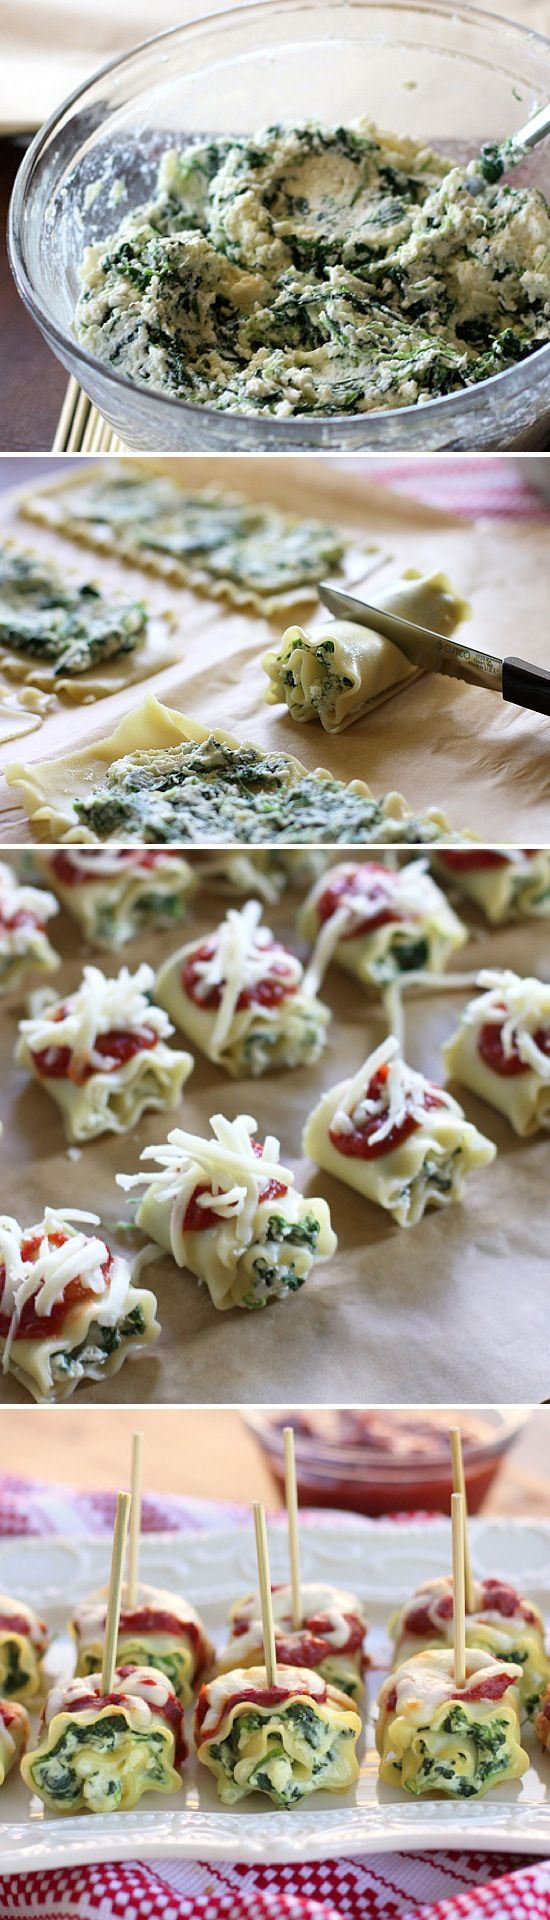 Mini Spinach Lasagna Roll-Ups - I like this idea but will make a diabetic version for our meal plans.